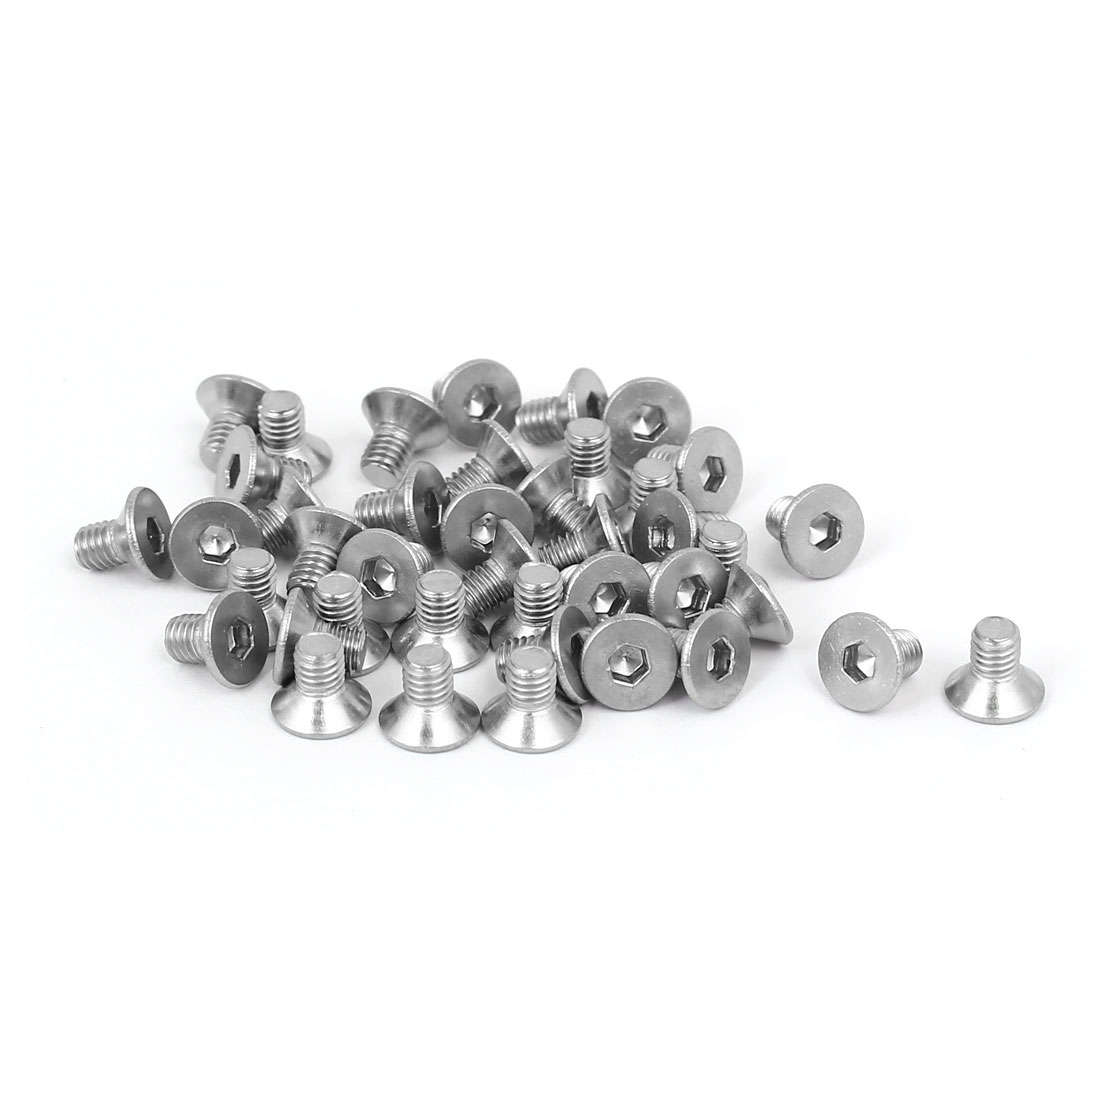 DIN7991 M3x5mm 316 Stainless Steel Flat Head Hex Socket Cap Screw Bolt 40pcs